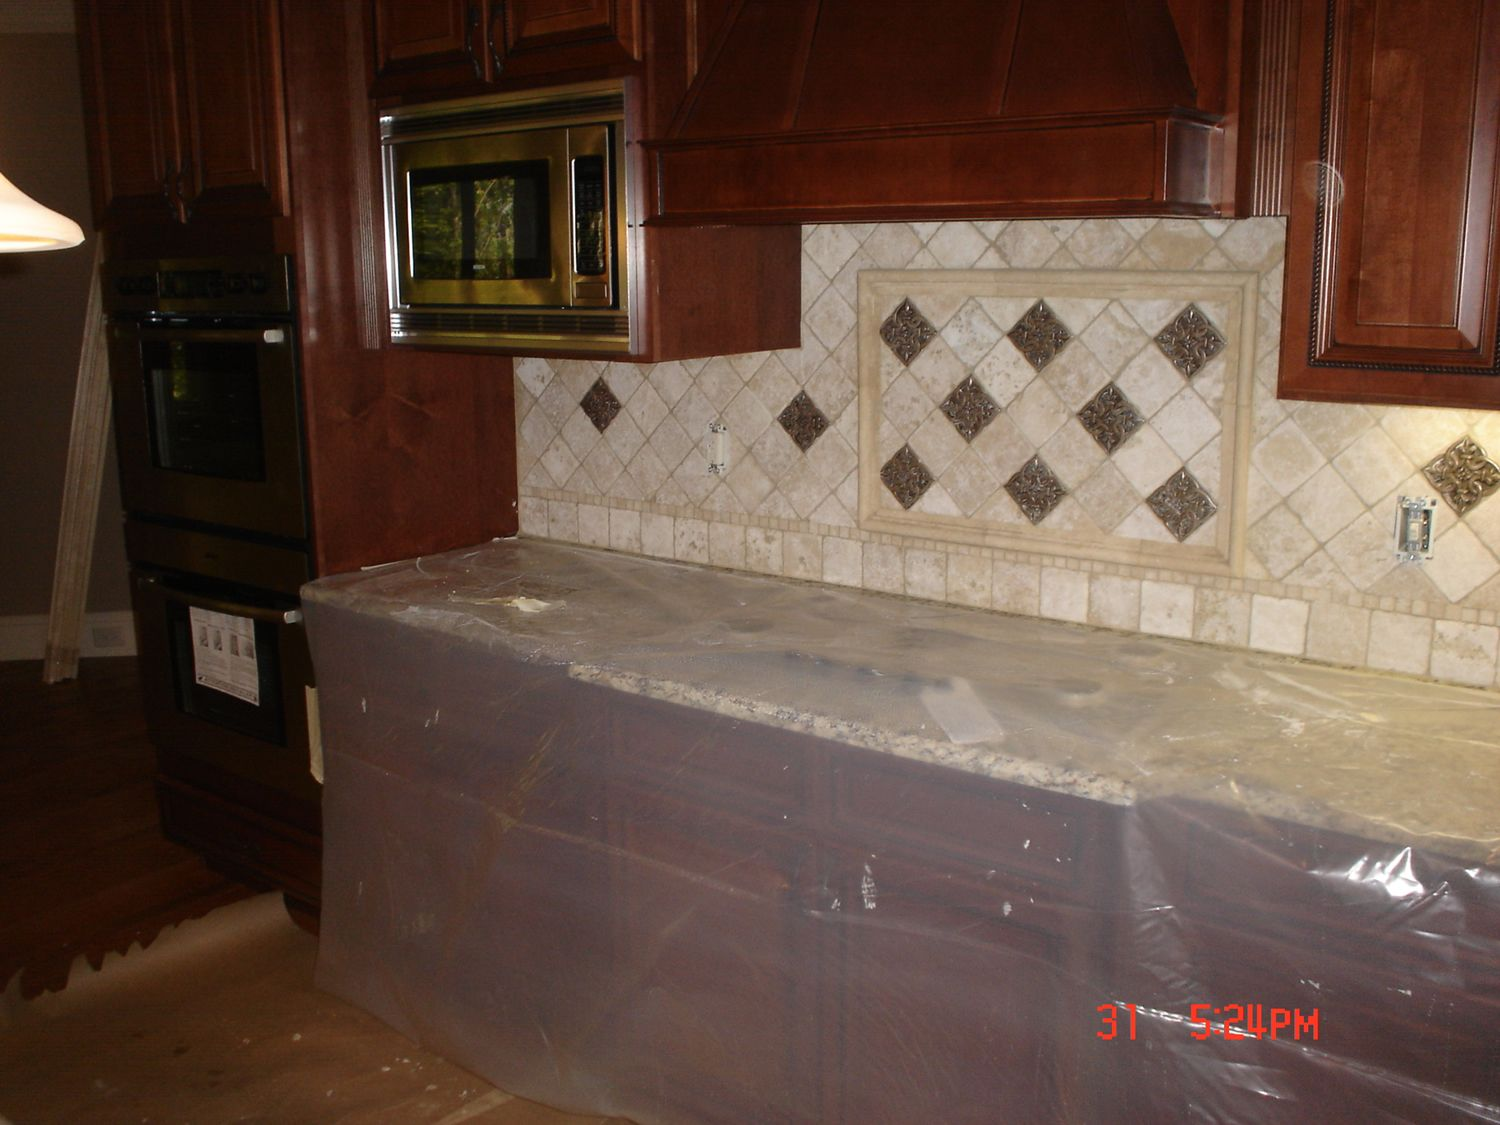 Kitchen travertine tile backsplash ideas kitchen tile Backsplash photos kitchen ideas